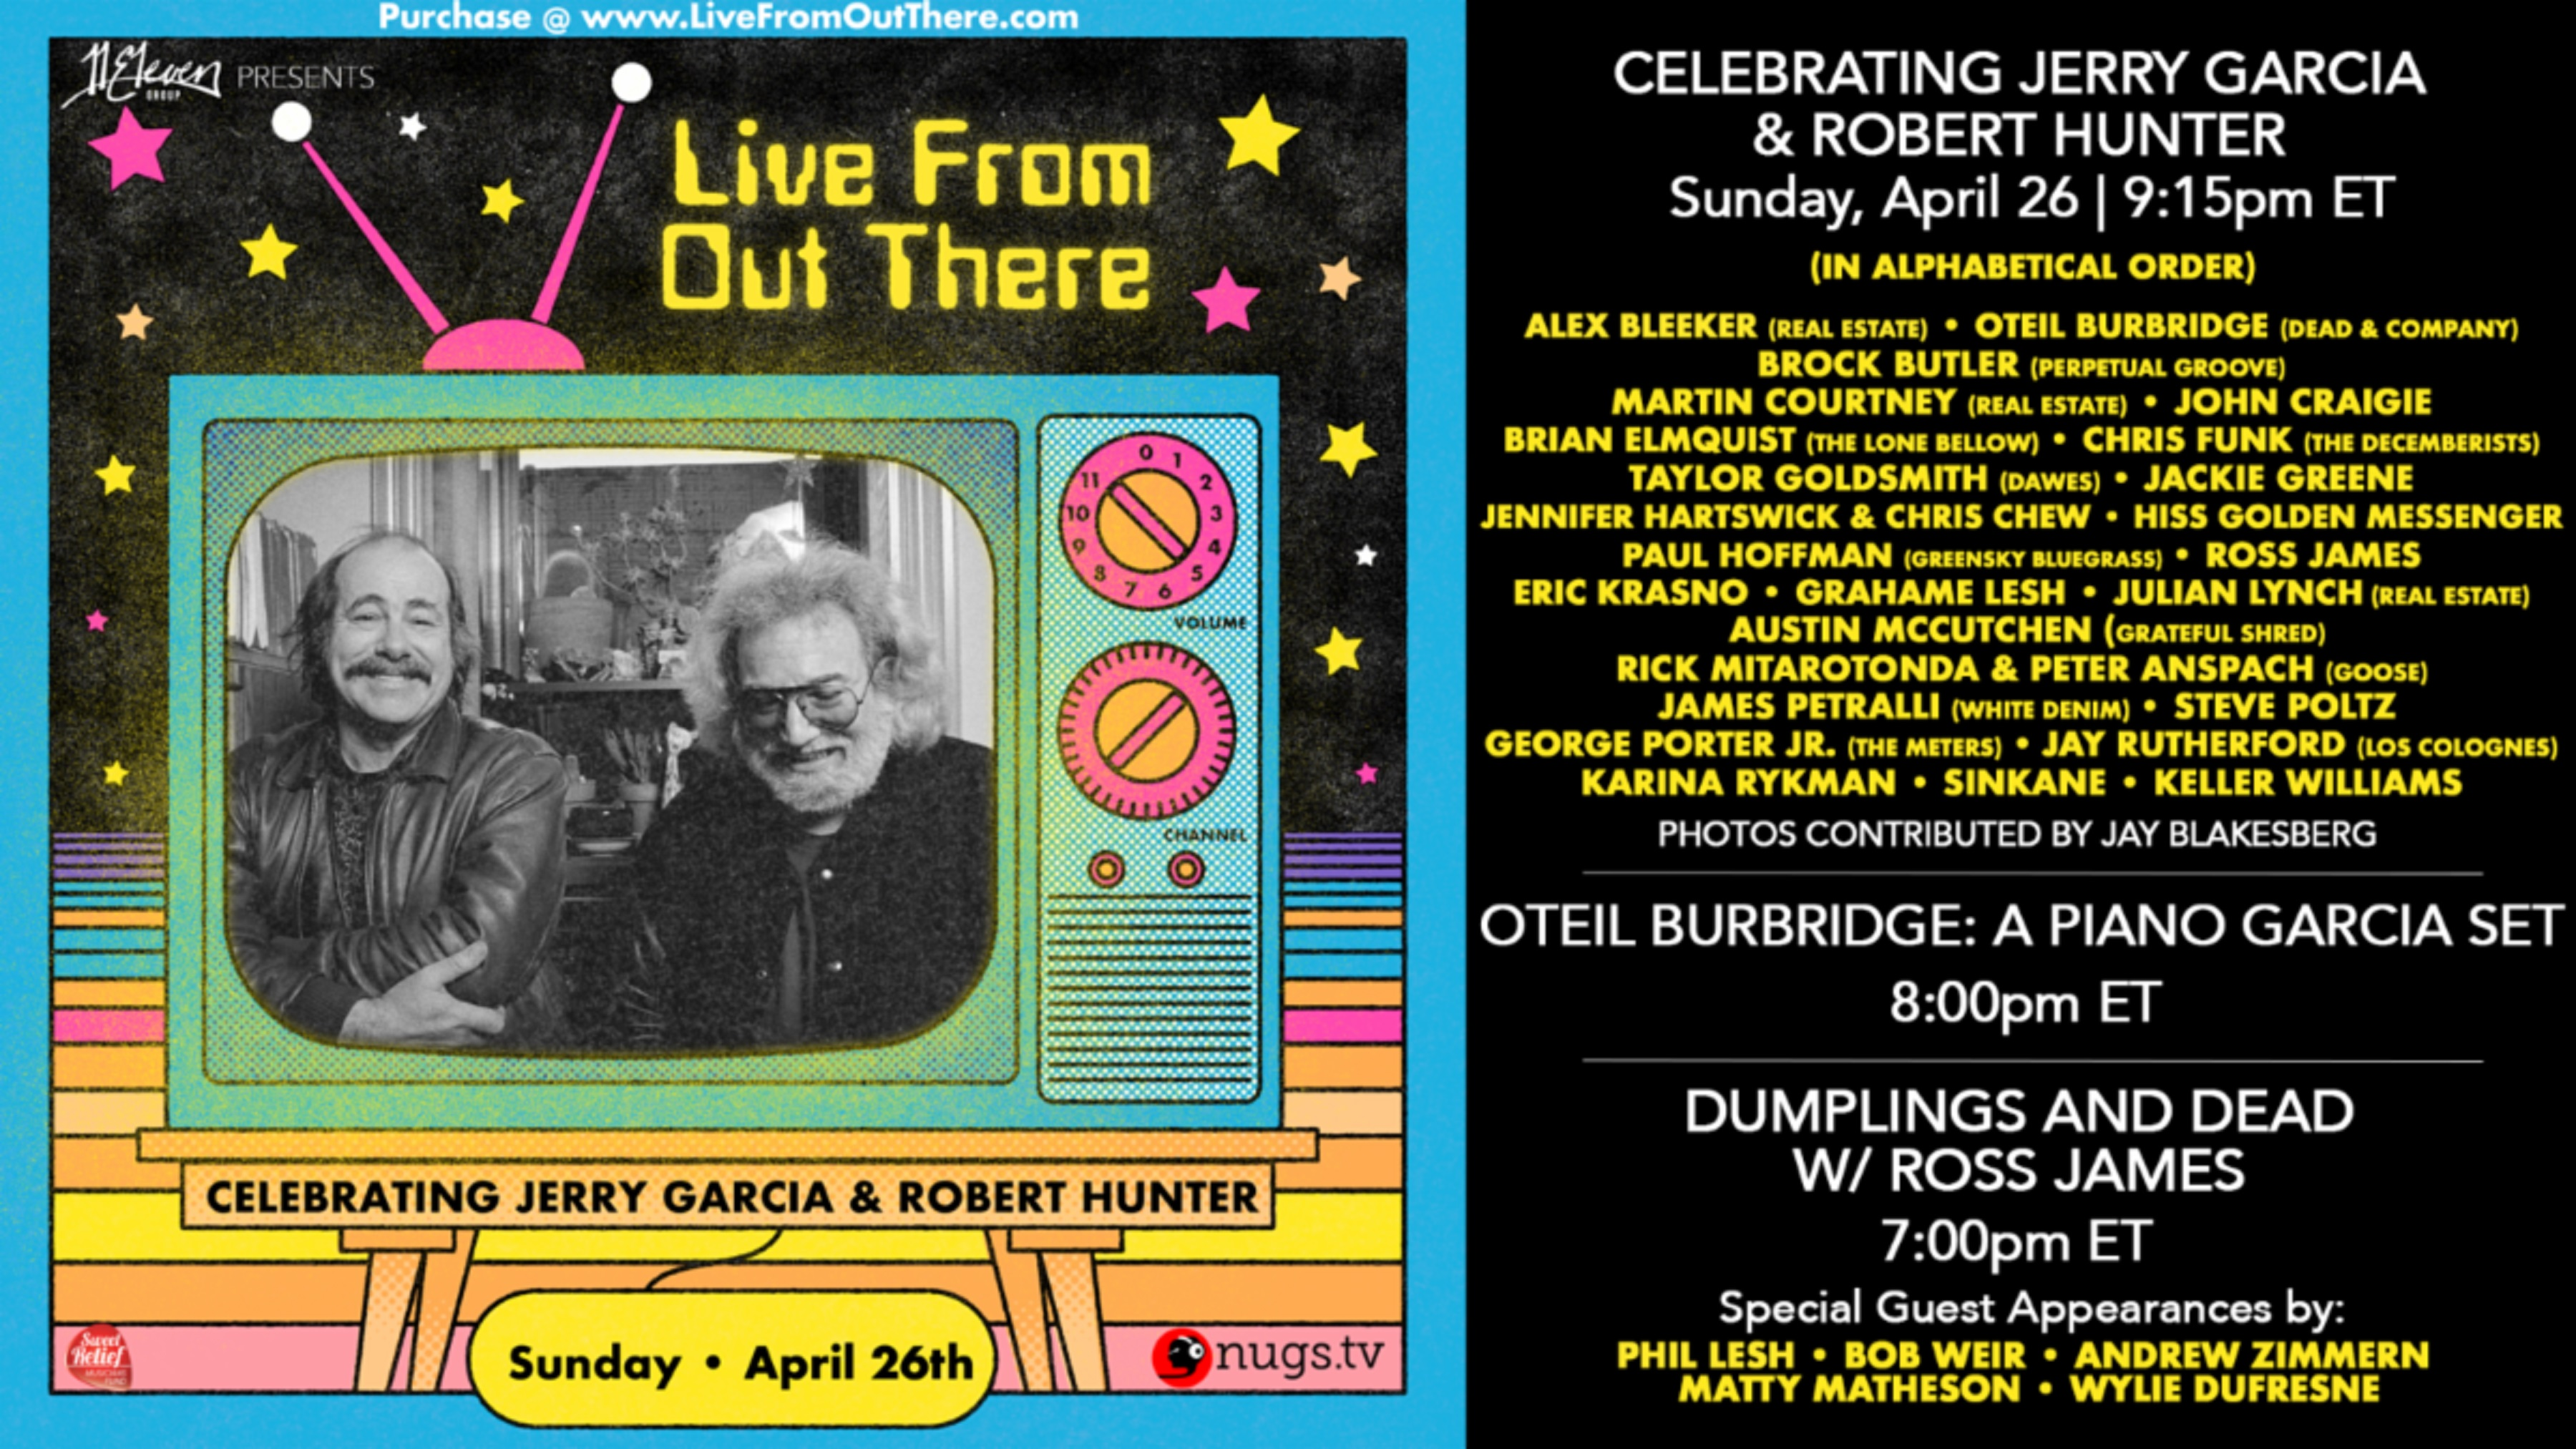 Jerry Garcia & Robert Hunter Virtual Festival for charity